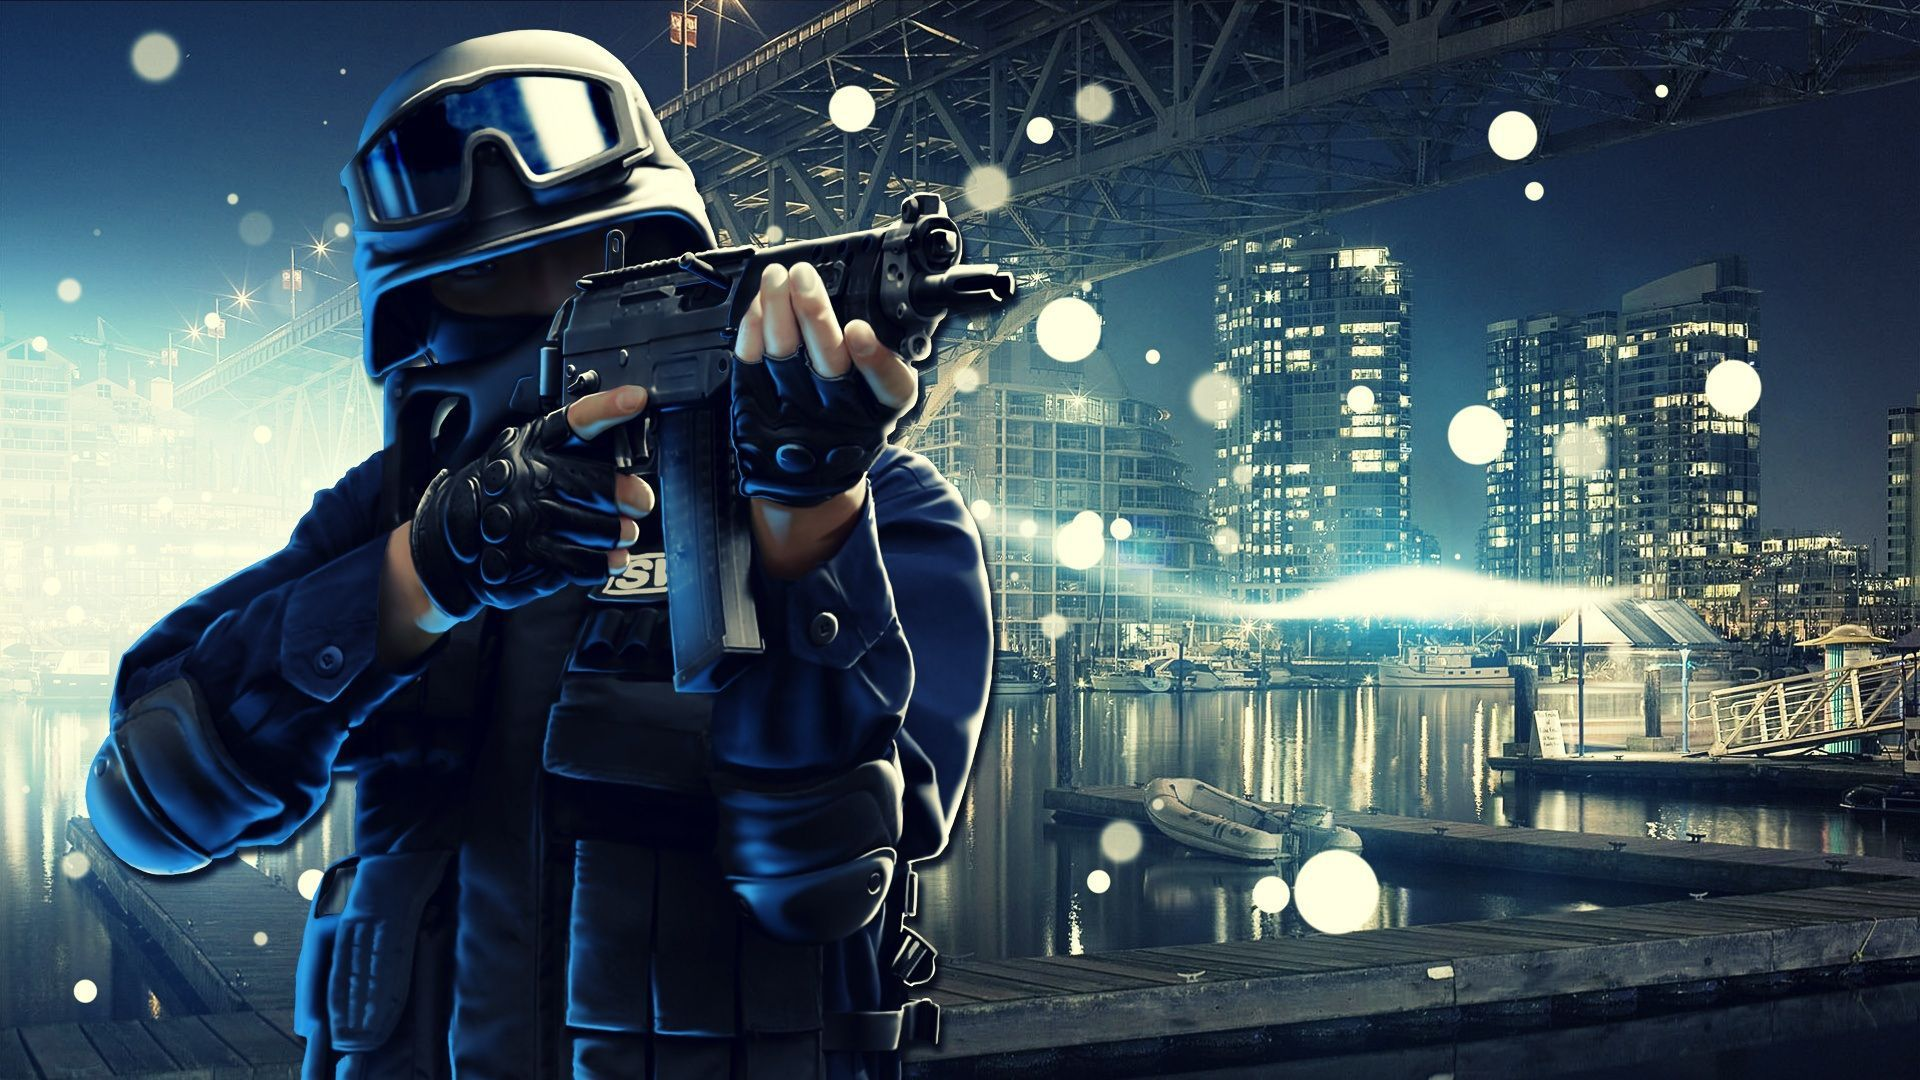 Swat Army Point Blank Online Game Wallpaper HD Image Picture Widescreen For Desktop